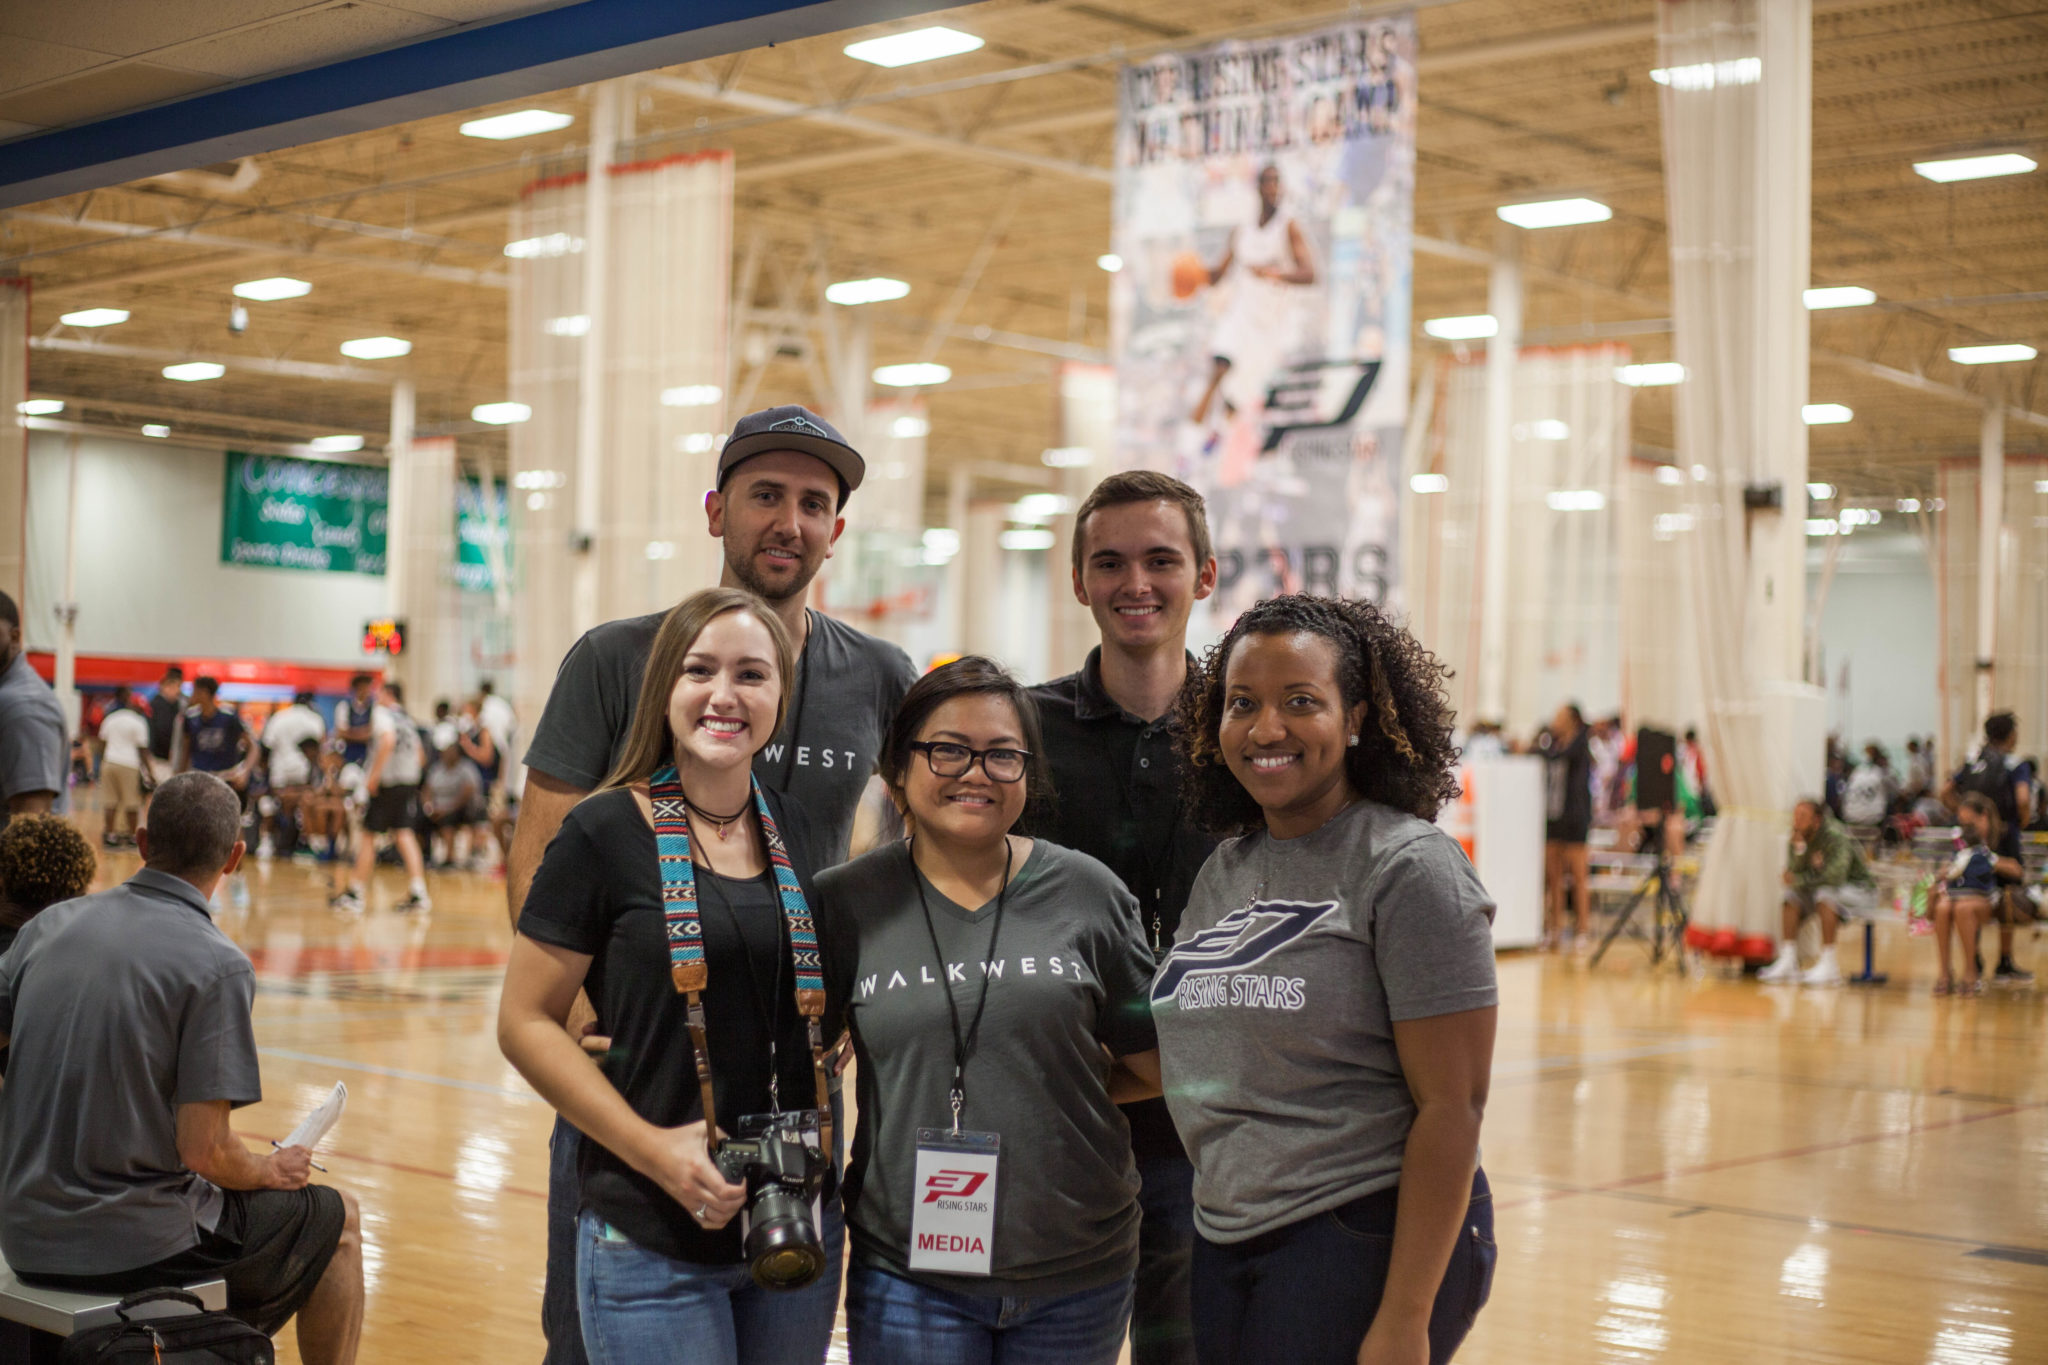 Walk West Digital Marketing Team at Chris Paul (CP3) Basketball Camp